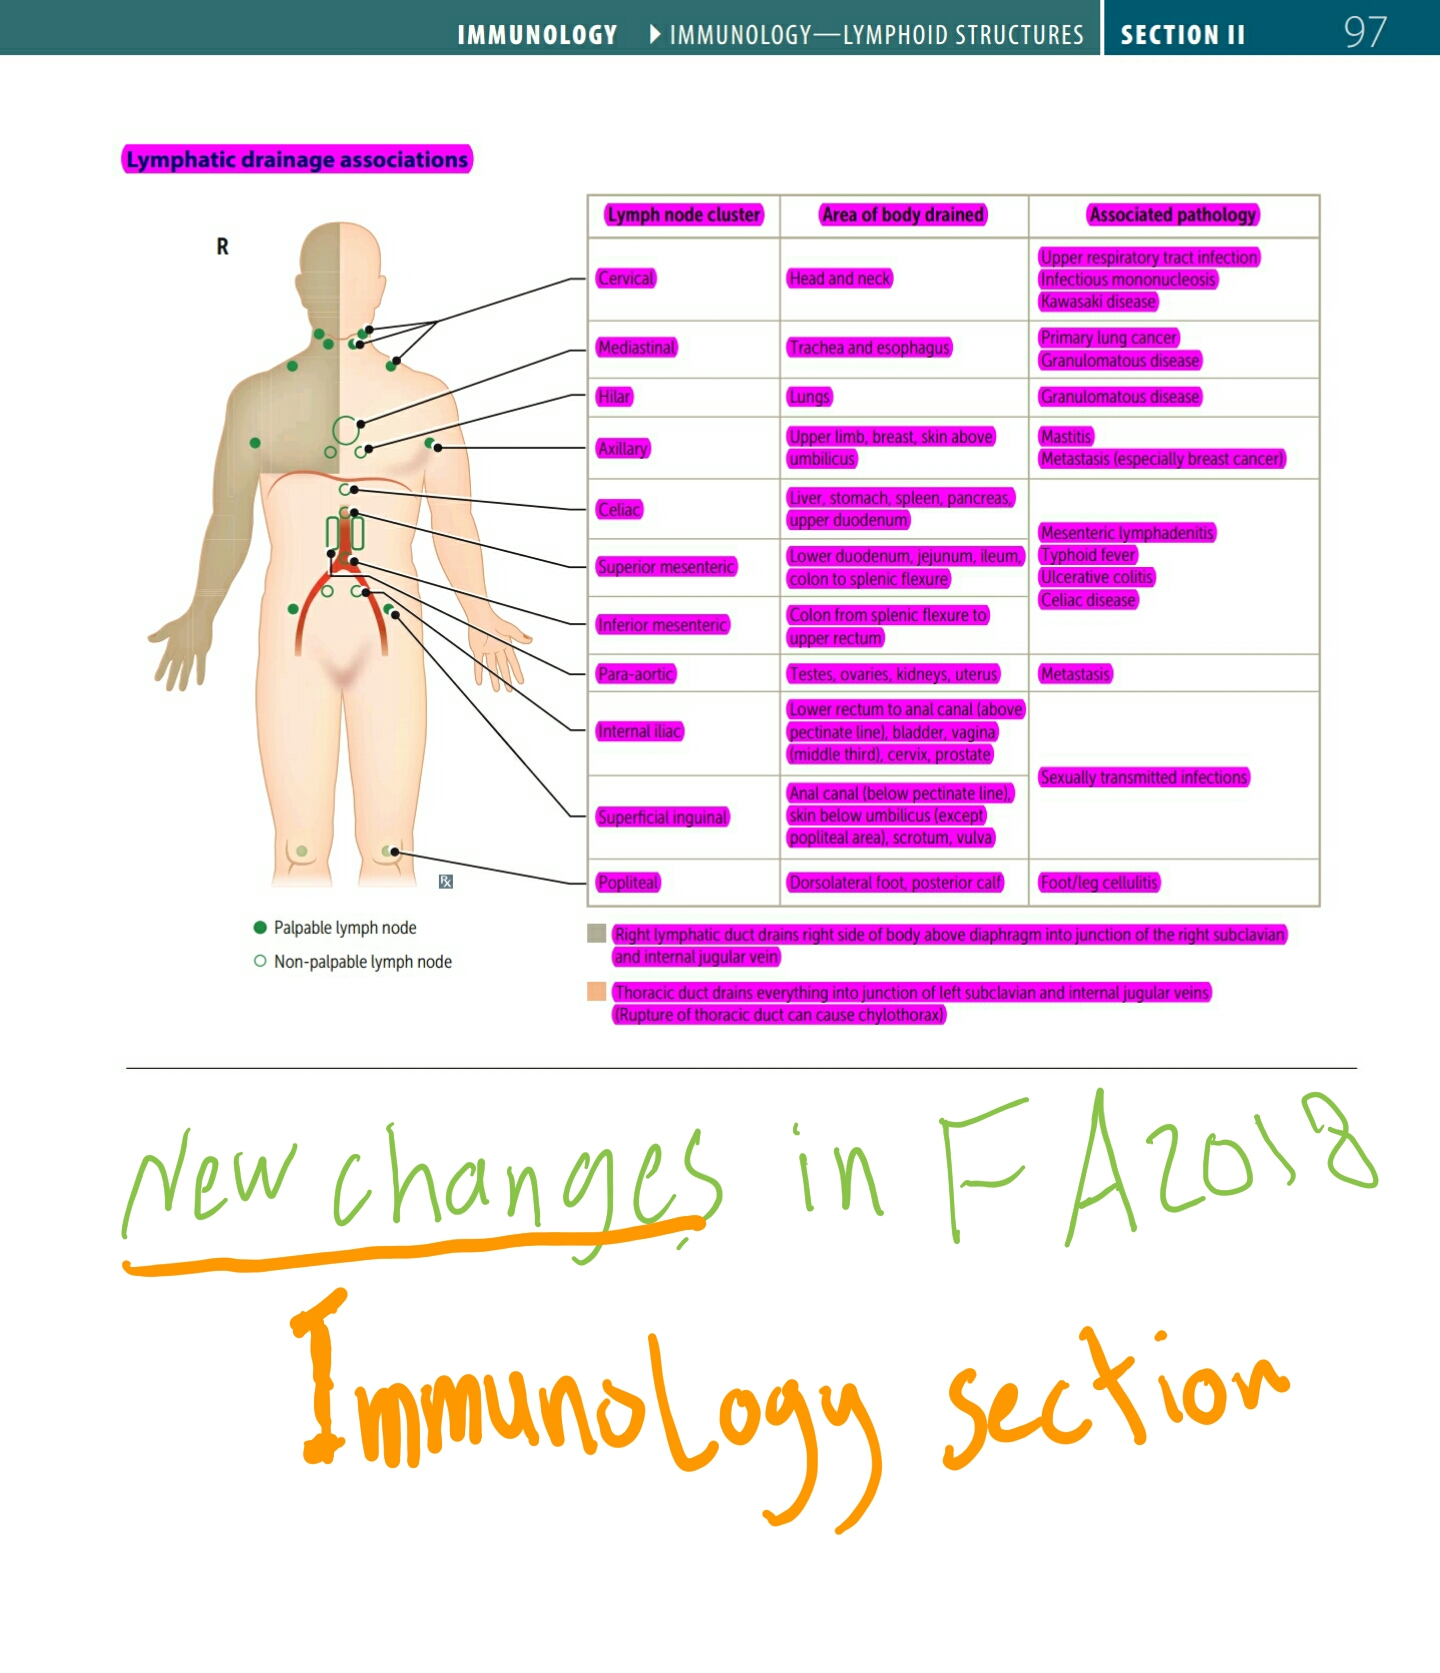 New Changes In First Aid Gor USMLE Step 1 2018 Edition In Immunology Chapter